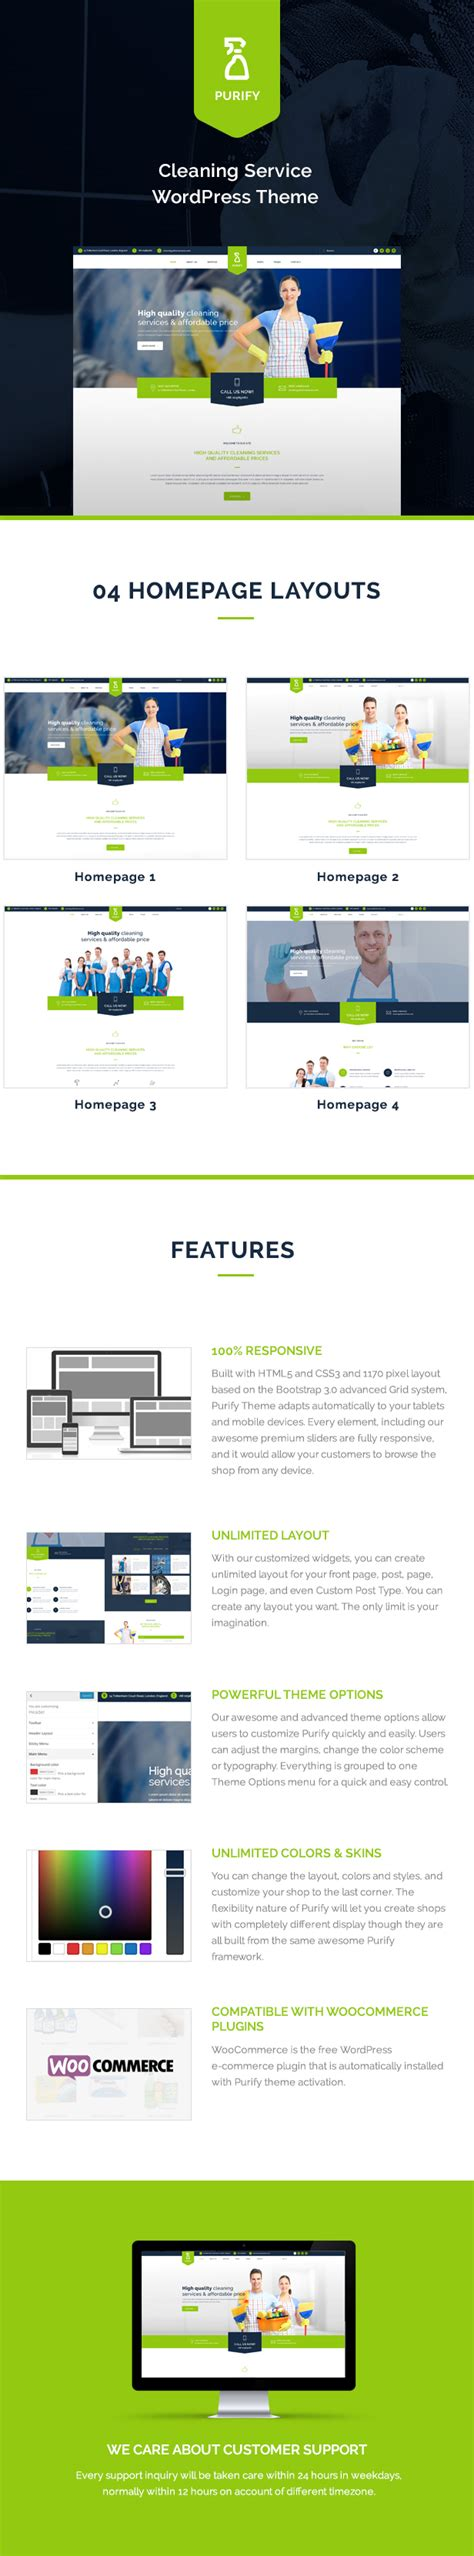 themeforest themes cracked purify cleaning service wordpress theme cracked